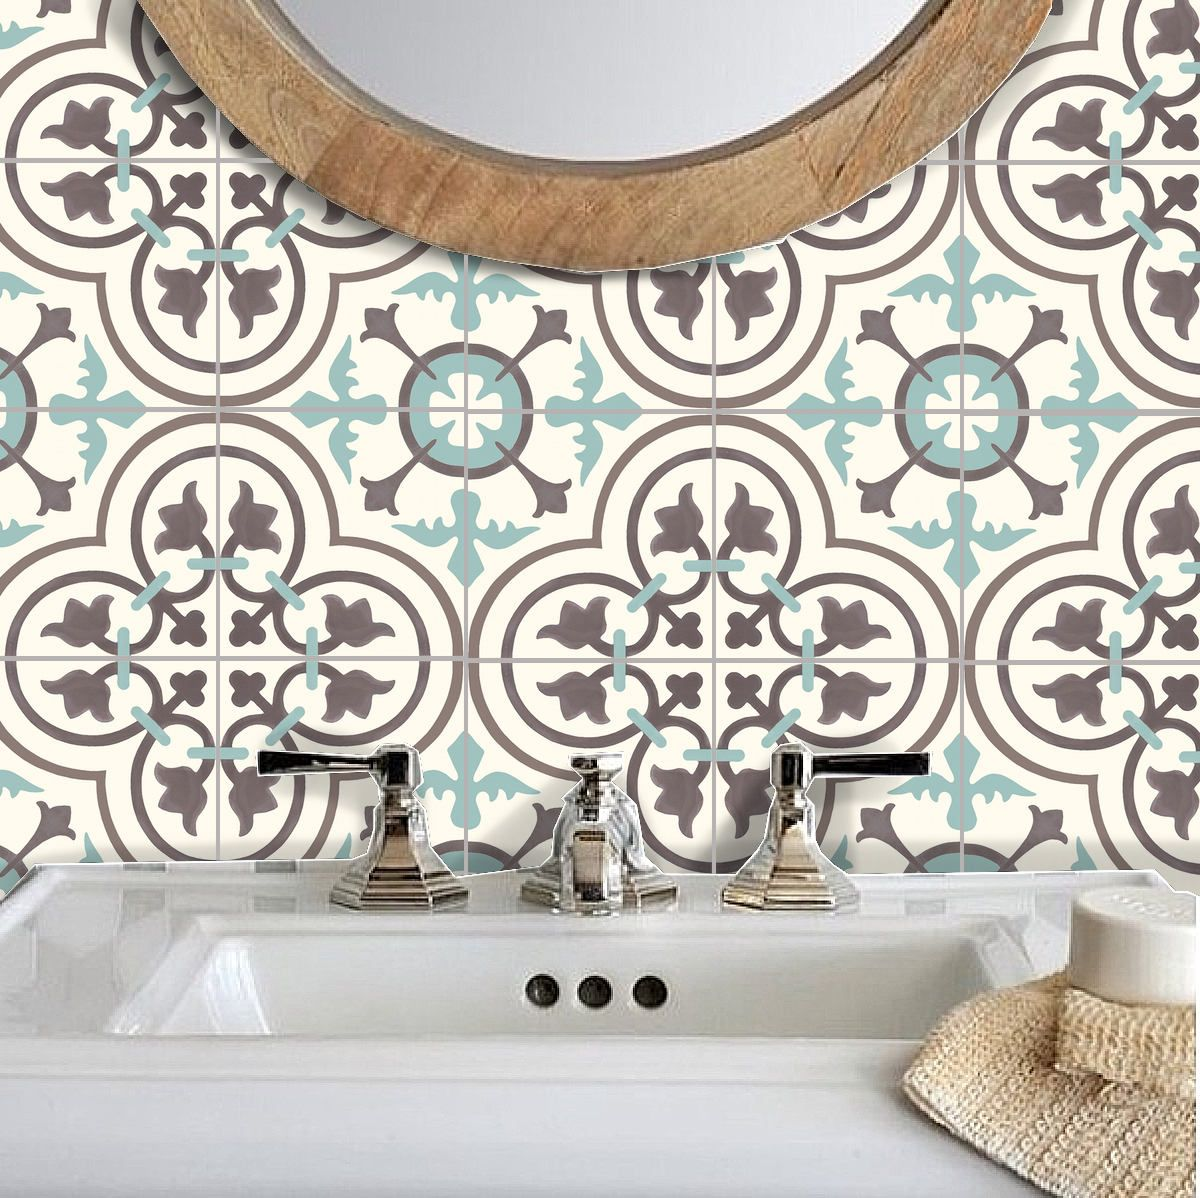 Tile Stickers Vinyl Decal WATERPROOF REMOVABLE for kitchen | Rugs ...